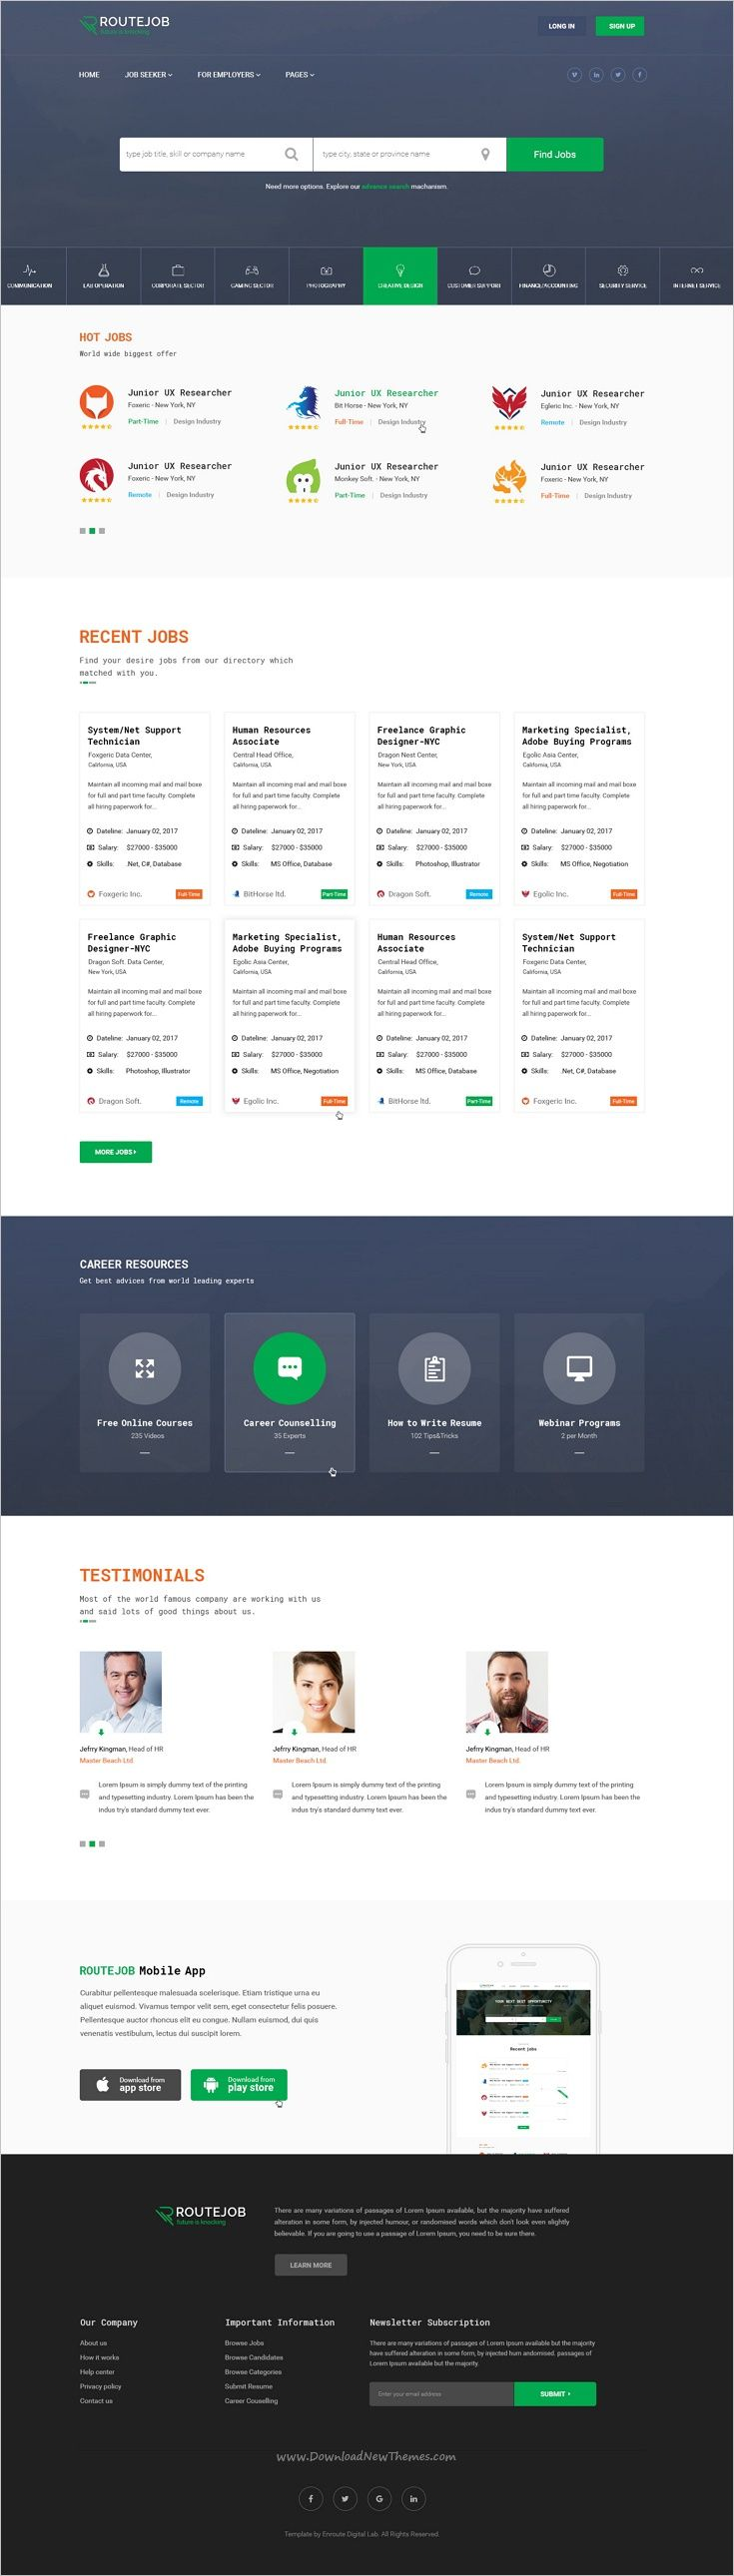 ROUTEJOB is a wonderful #PSD template for #job board or job #portal websites download now➩ https://themeforest.net/item/routejob-job-board-psd-template/19213827?ref=Datasata